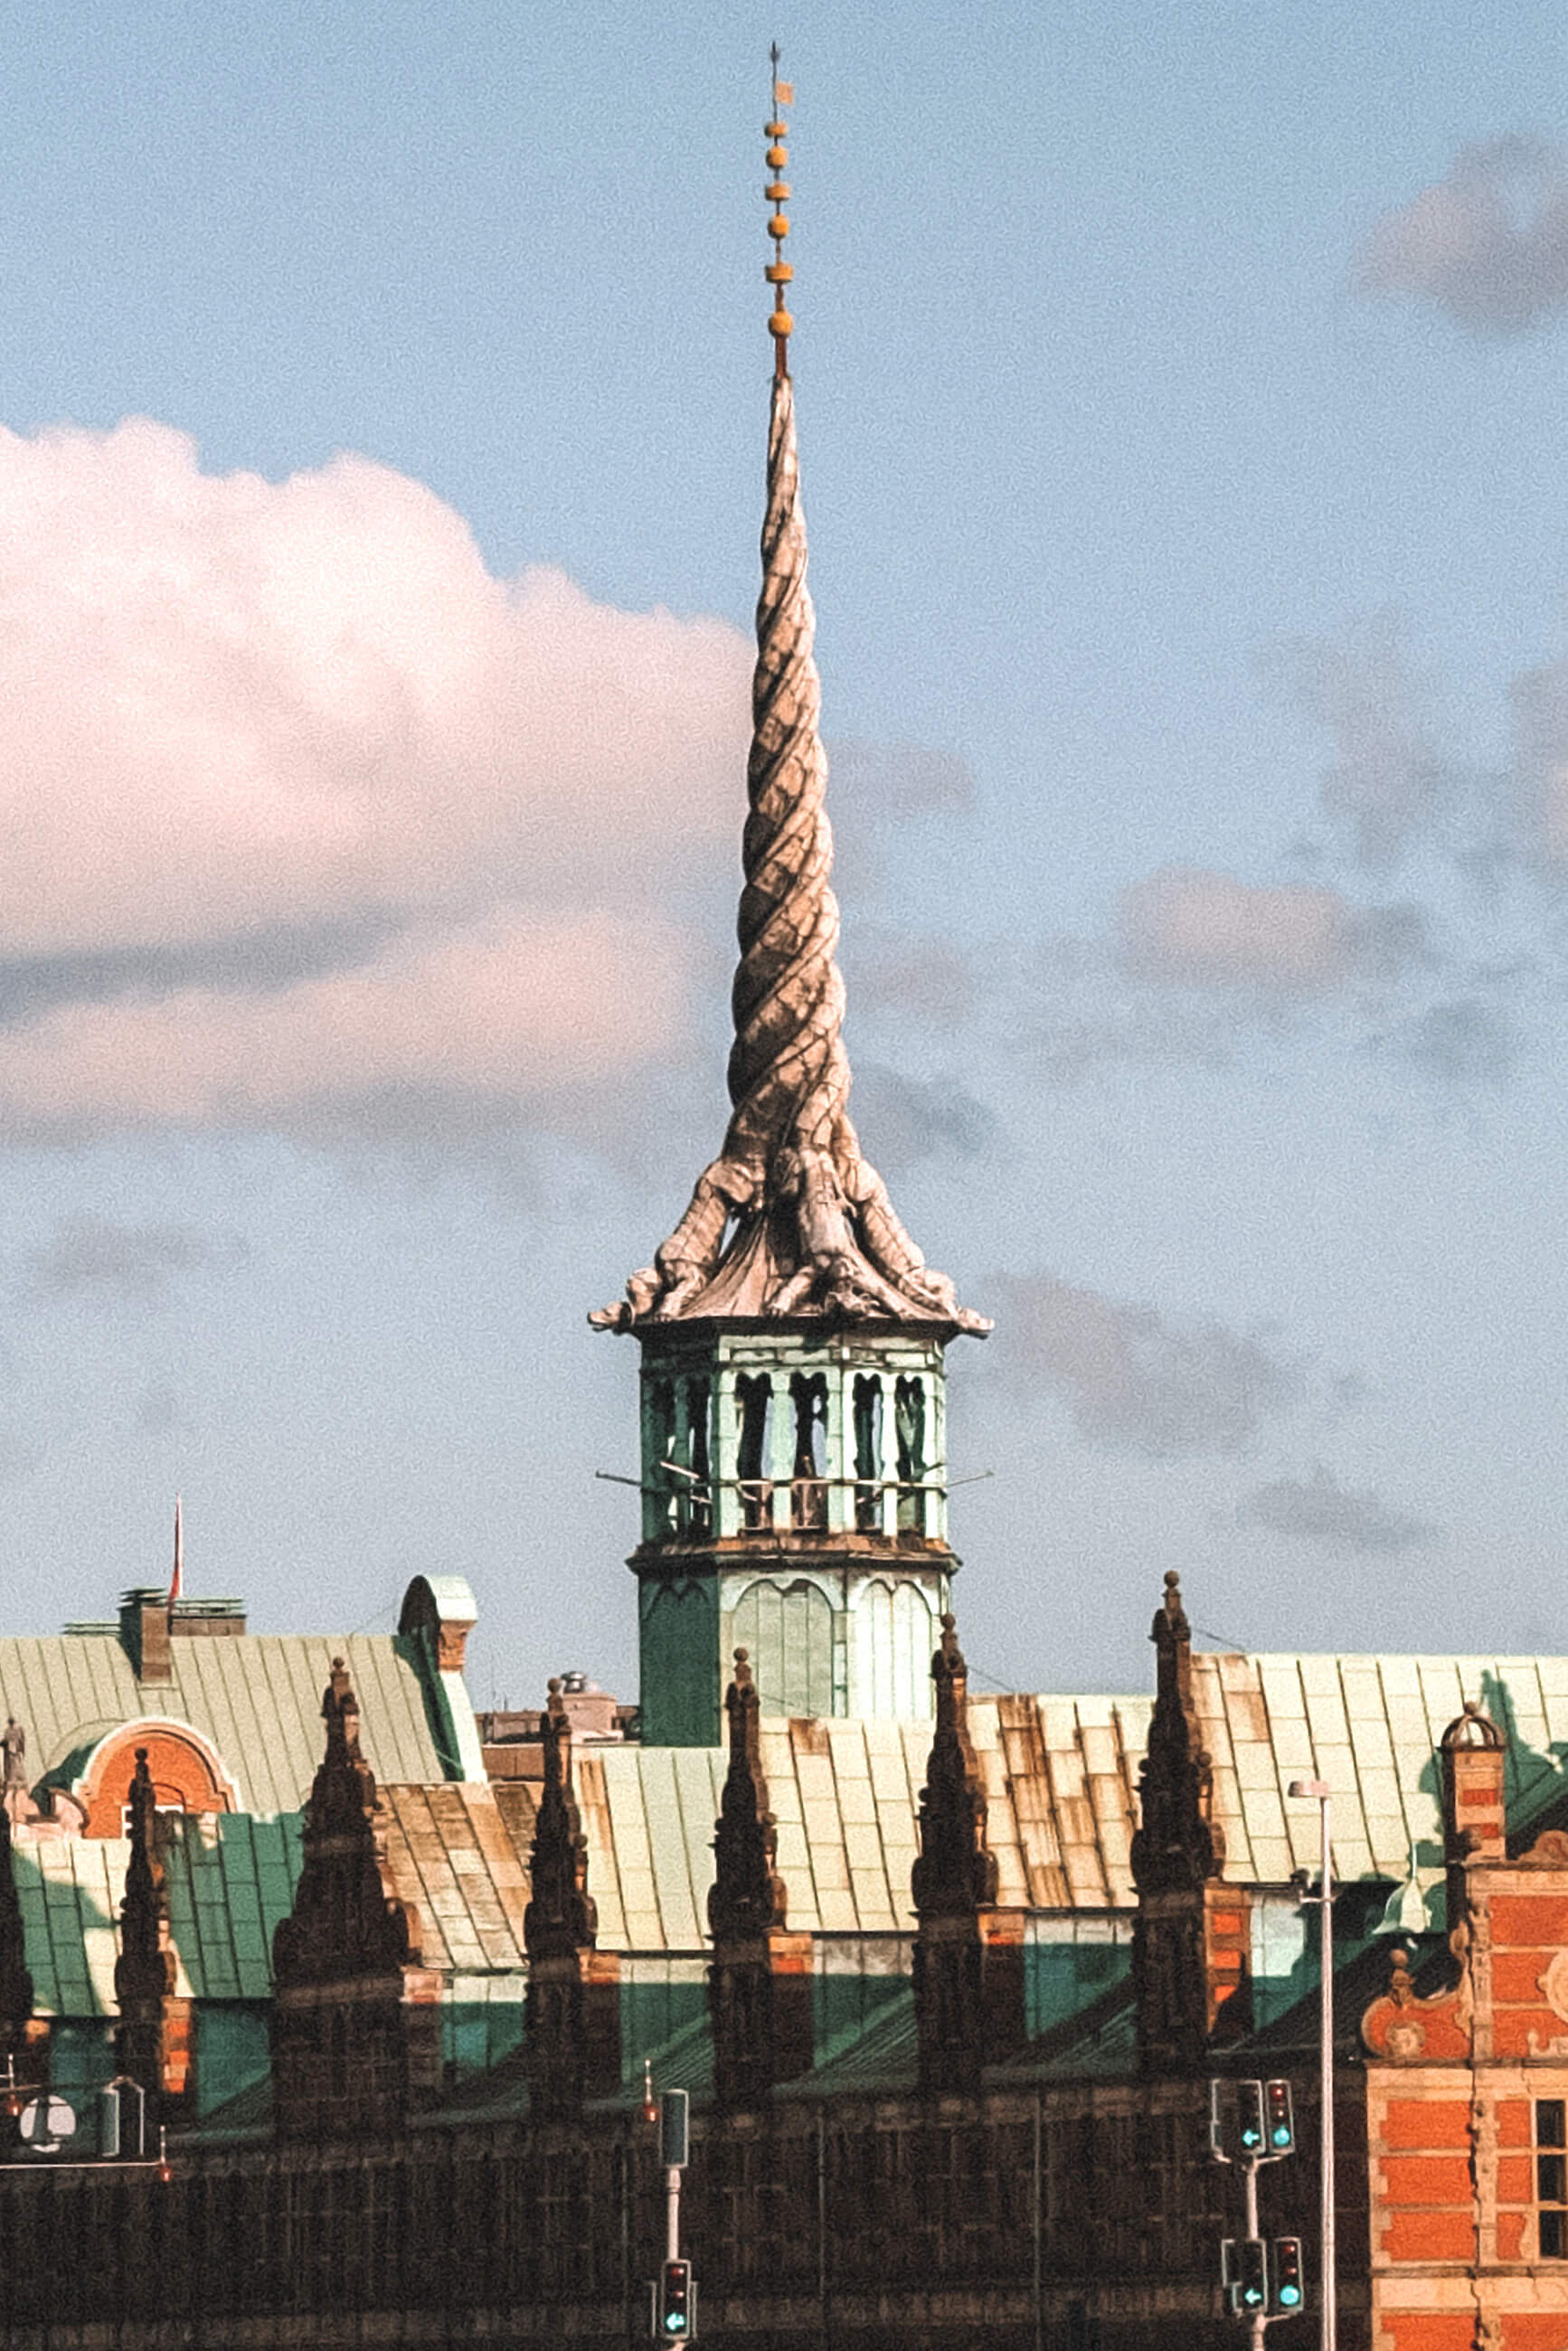 https://bubo.sk/uploads/galleries/5038/rosenborg-castle-893890-23-1.jpg